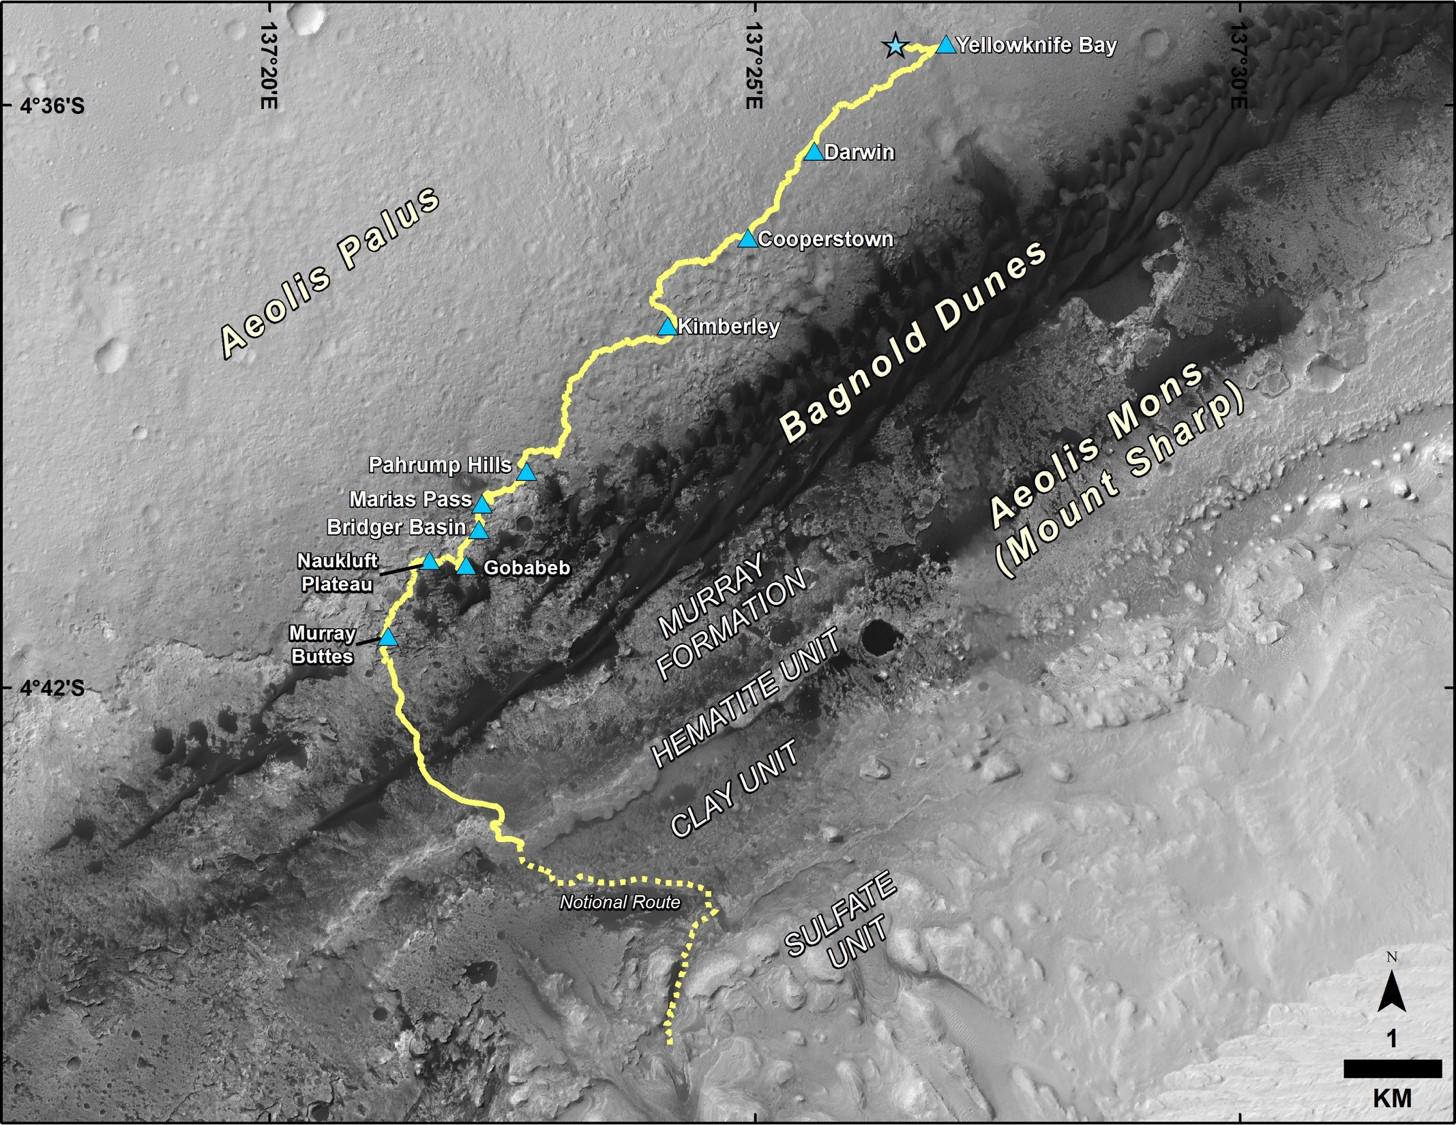 Curiosity's route from its landing point in August 2012 to its location in December 2016.